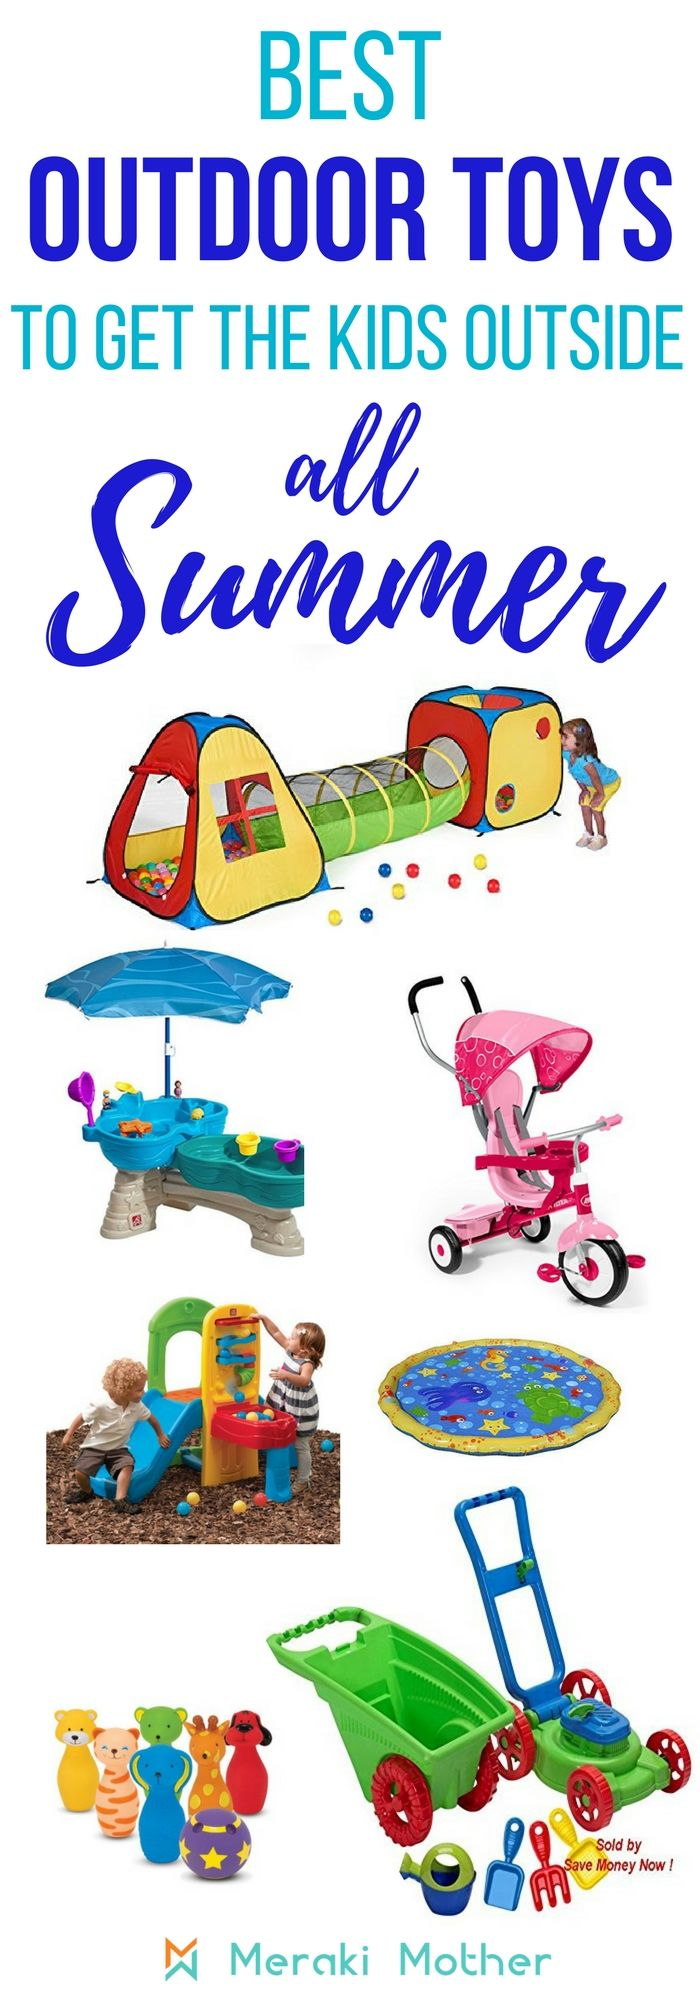 Best Outdoor Toys For Toddlers Best Outdoor Toys Outdoor Toys For Toddlers Outside Toys For Toddlers